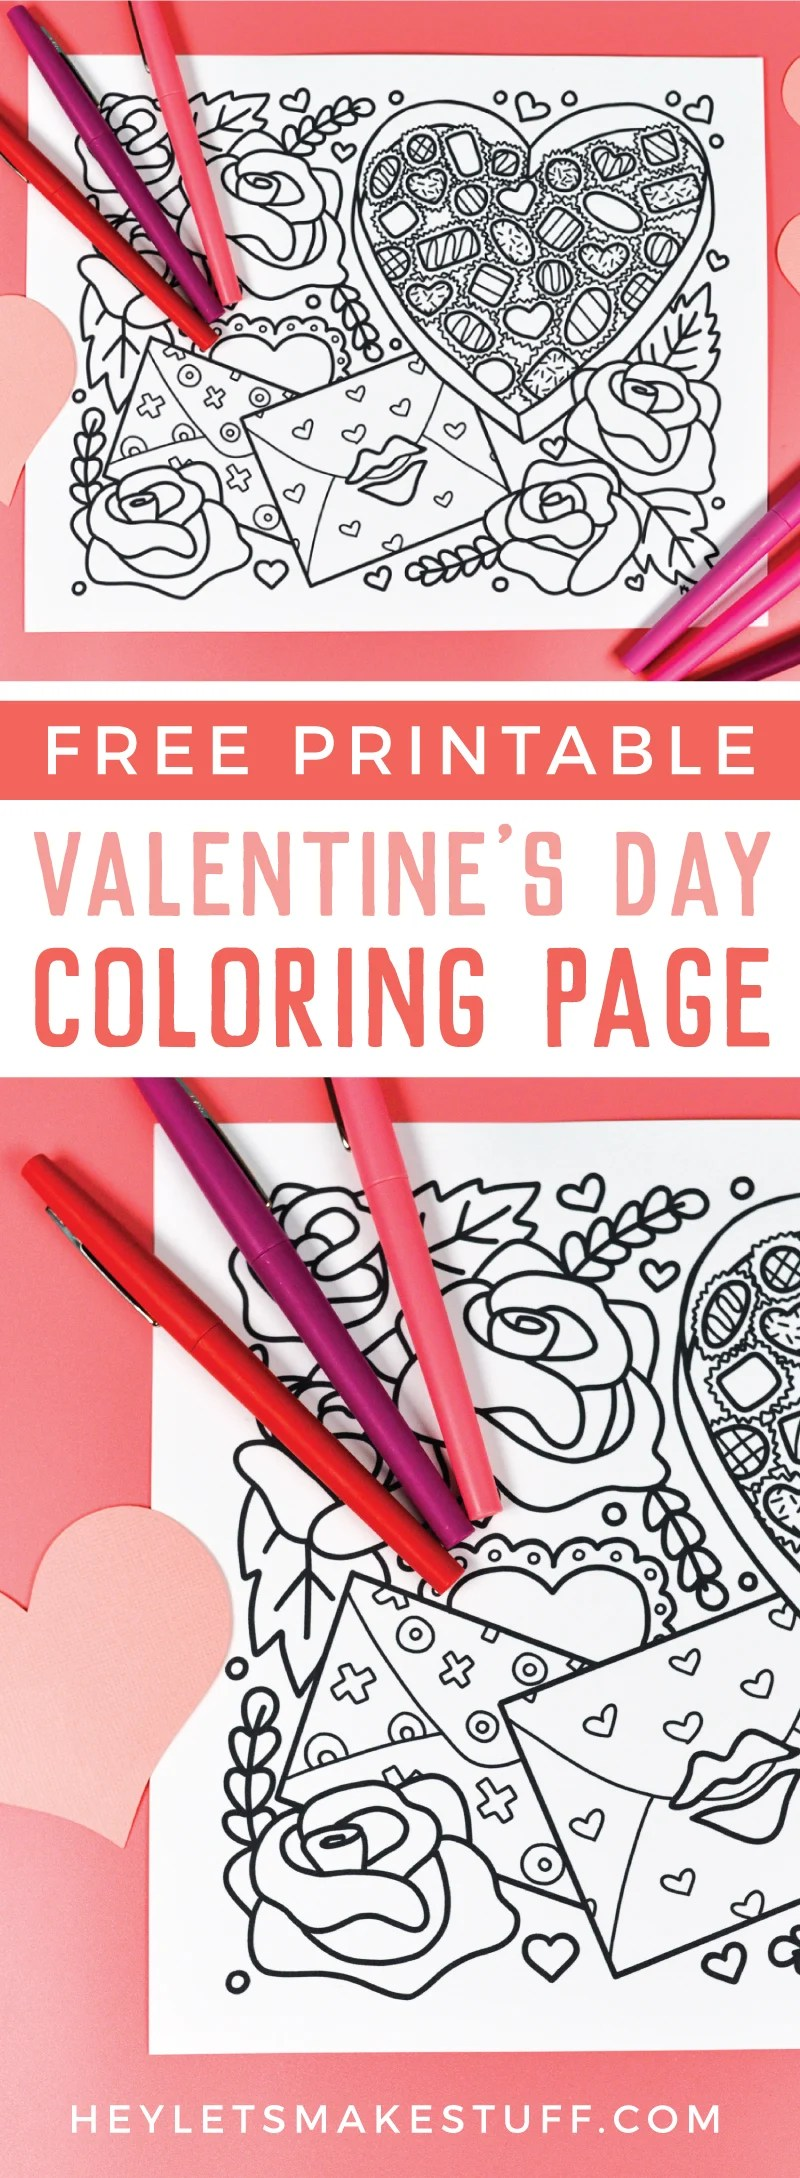 This free printable Valentine's Day coloring page is all about love! A box of chocolates, love letters, and big roses are perfect for all sorts of shades of red and pink. Print it out for free! via @heyletsmakestuf